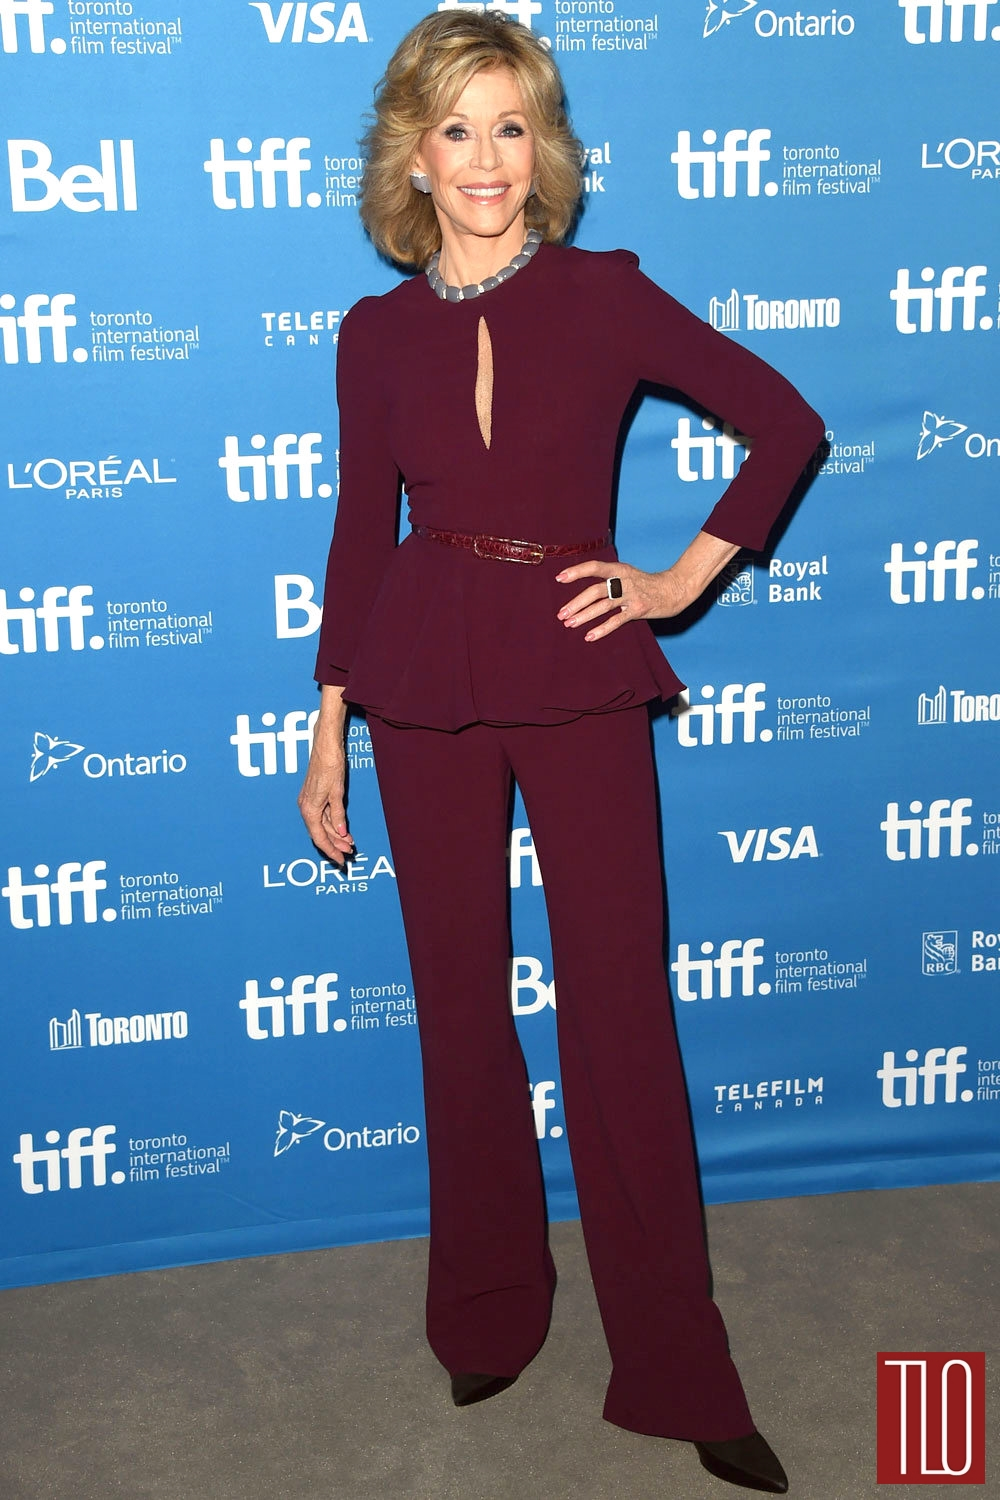 Jane-Fonda-This-Is-Where-I-Leave-You-Movie-Premiere-Elie-Saab-Red-Carpet-Fashion-Tom-Lorenzo-Site-TLO (1)